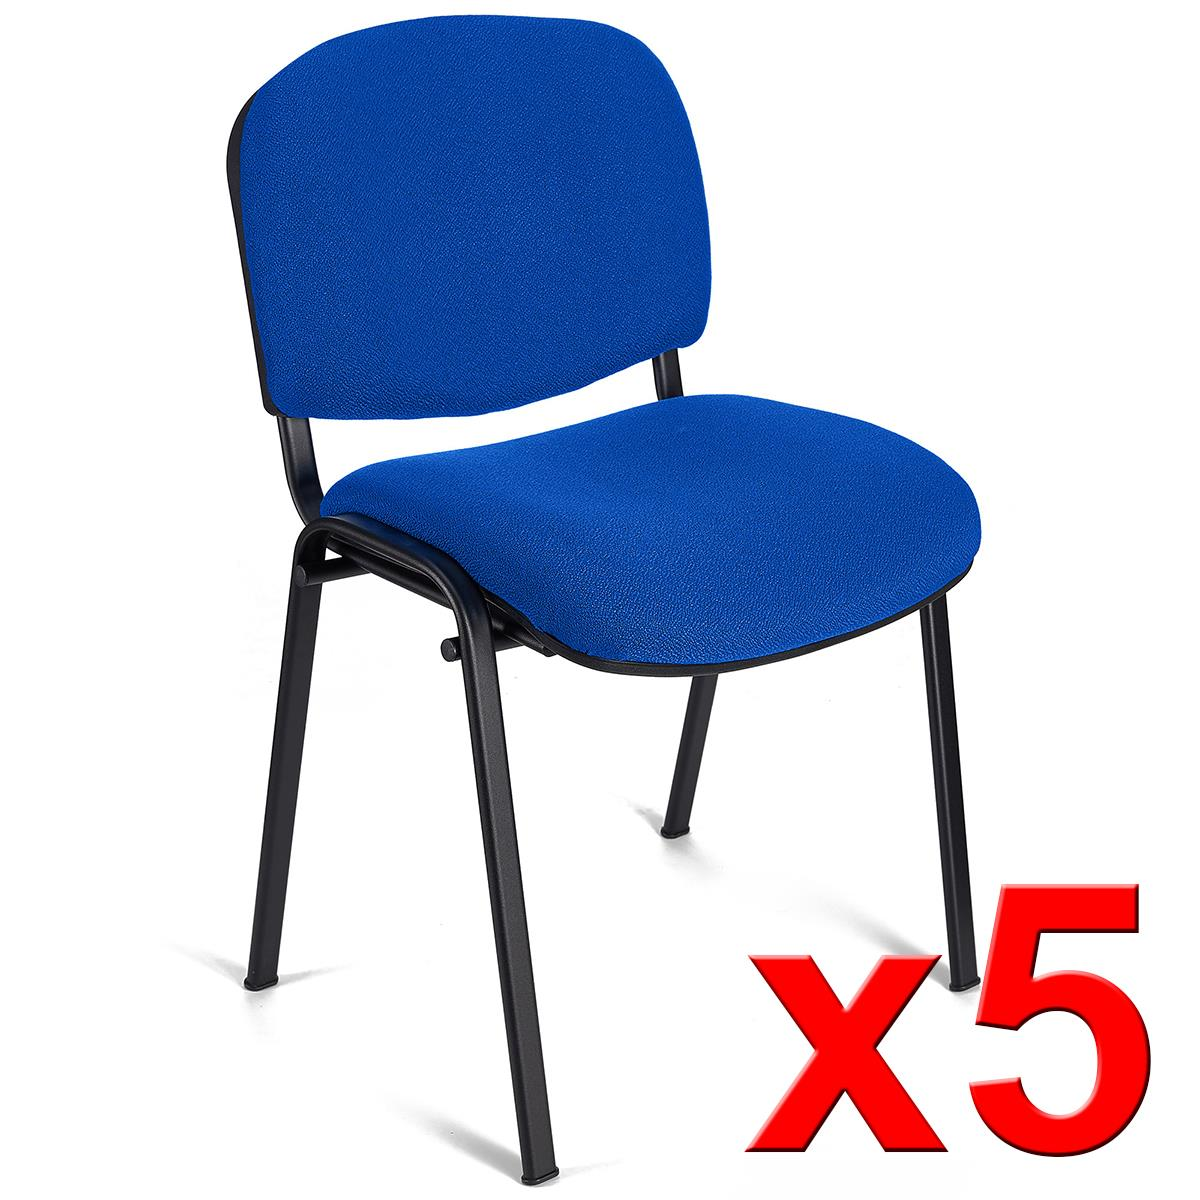 Lote 5 sillas de confidente moby base color azul lote for Silla para computadora precio